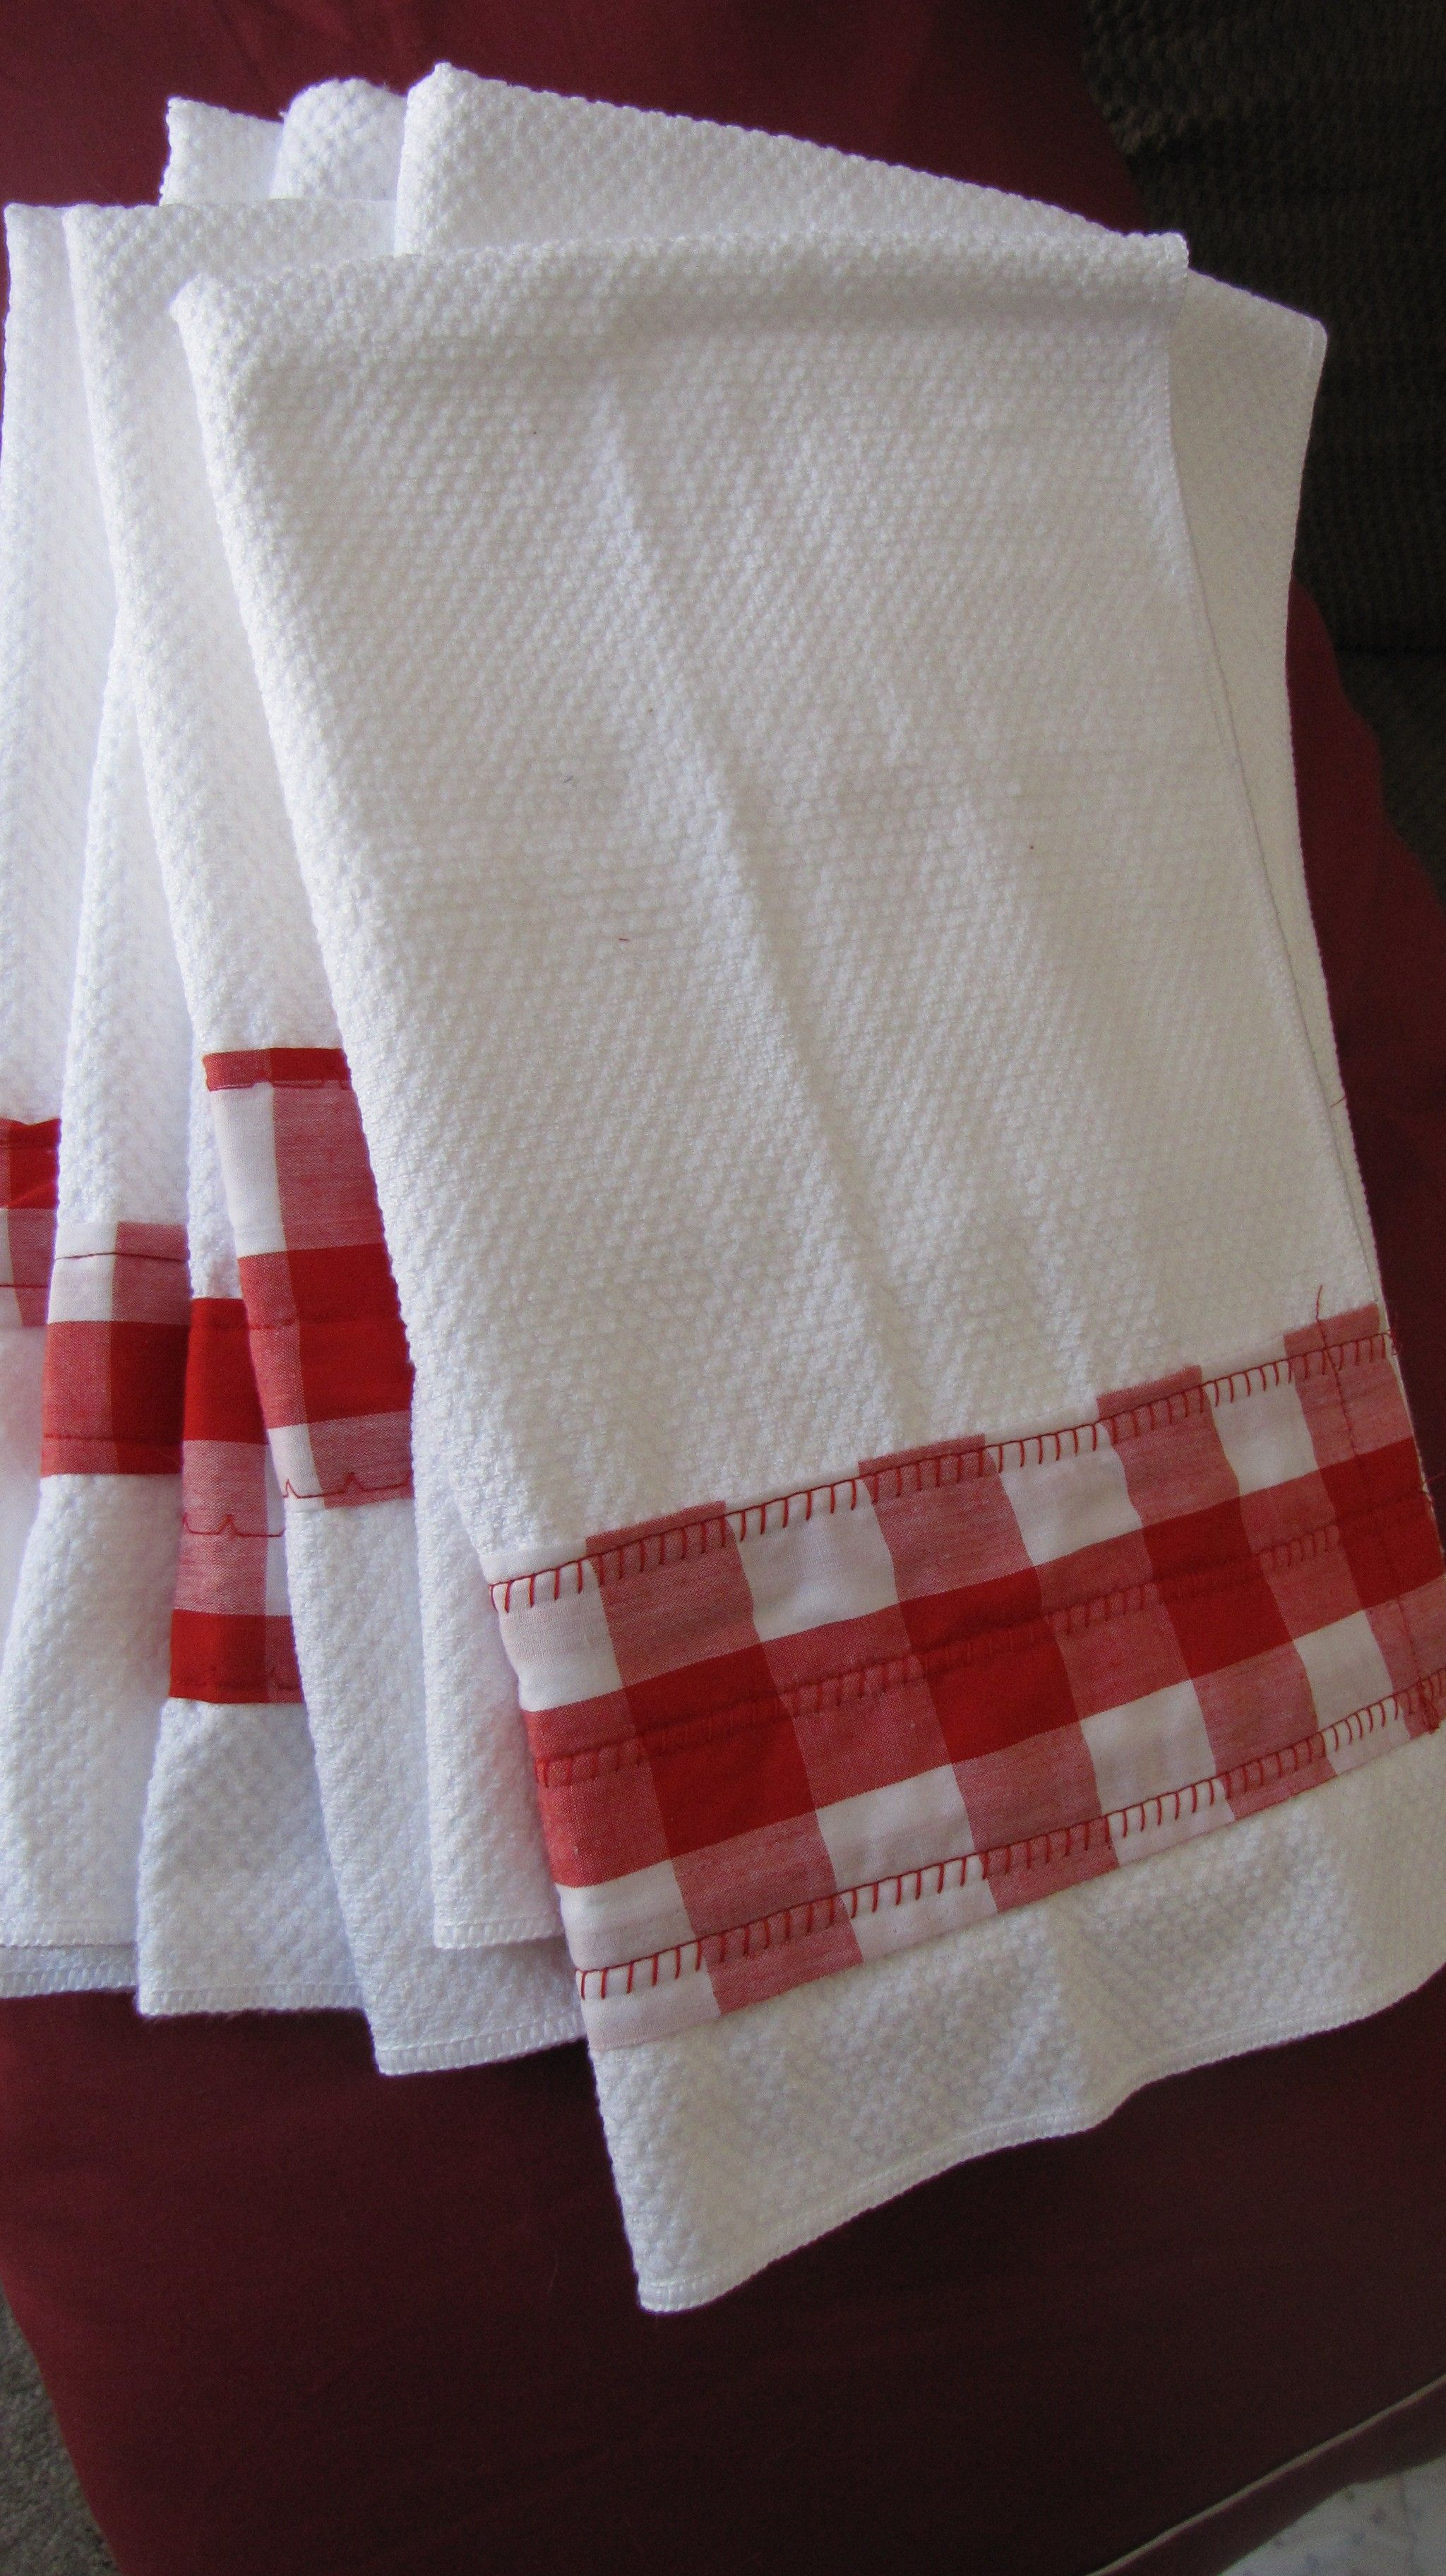 Gingham Sewed To Cheap Walmart Kitchen Towels To Decorate